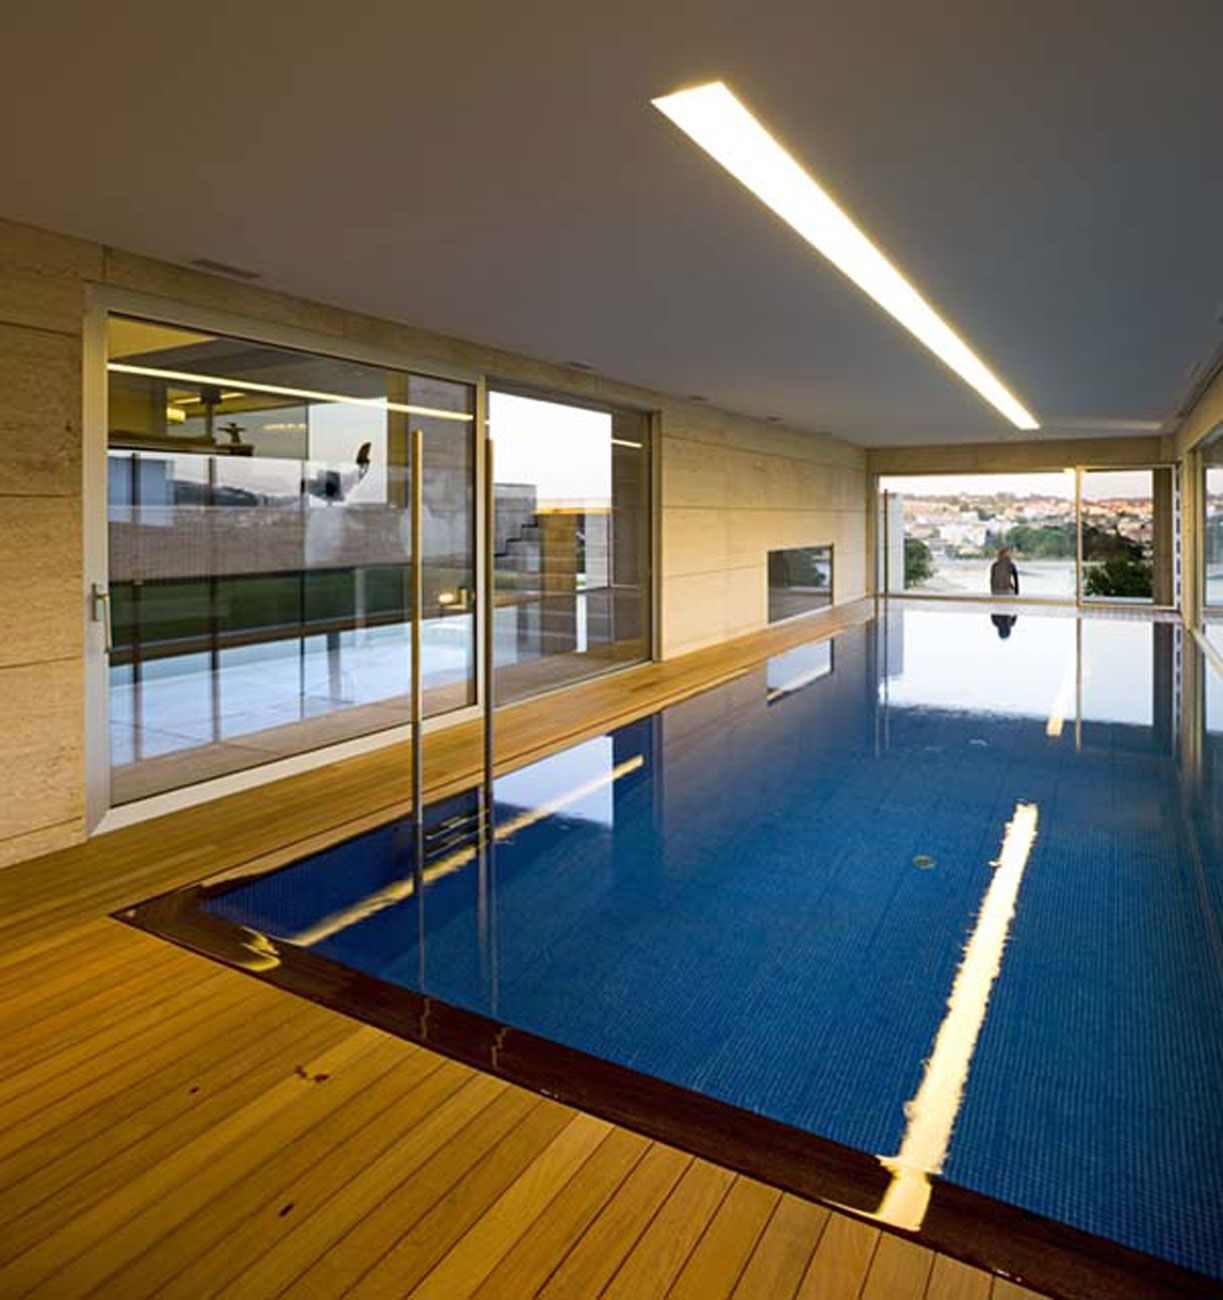 Perfect Centric Design Group | Wellness Swimming Pool And Garden | Two Small Rental  Homes With One Wellness Souterain With Swimming Pool. The Swimming Poolu2026